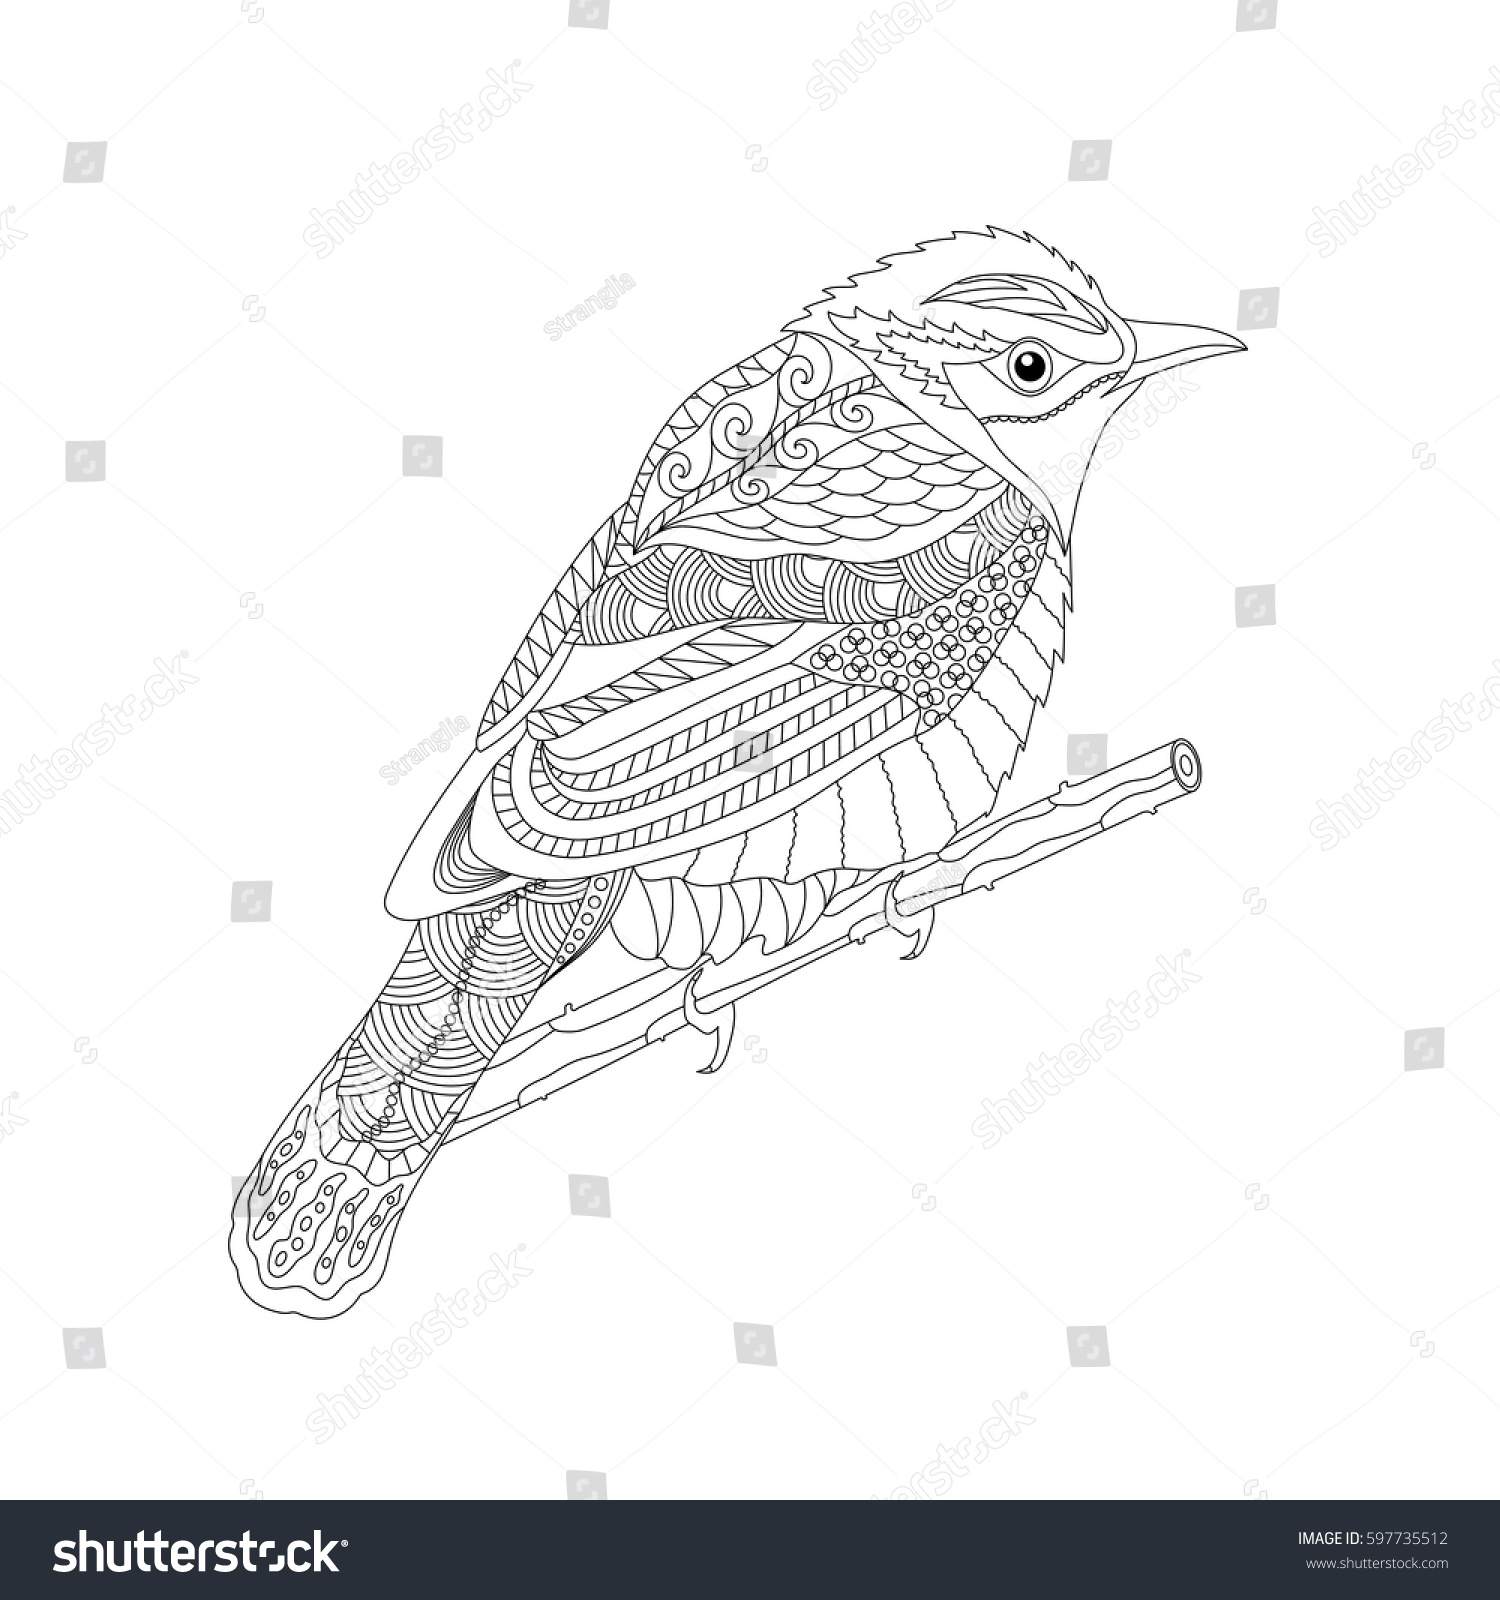 Coloring books for adults and children - Coloring Book For Adults And Children Fantasy Bird On A Branch Black And White